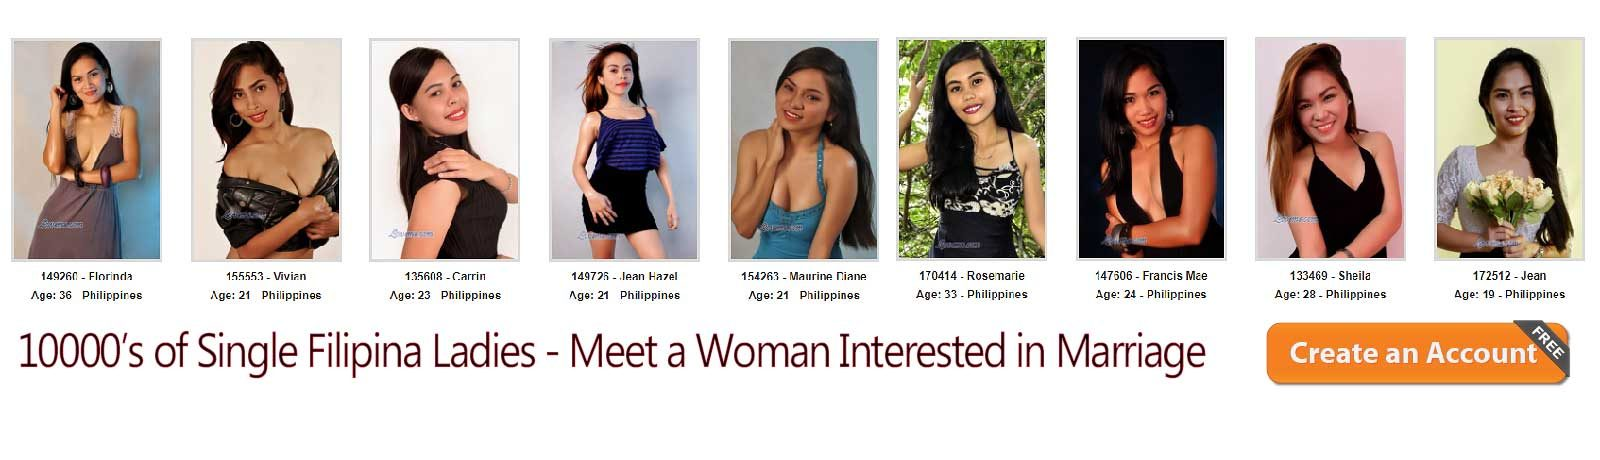 American women seeking foreign men